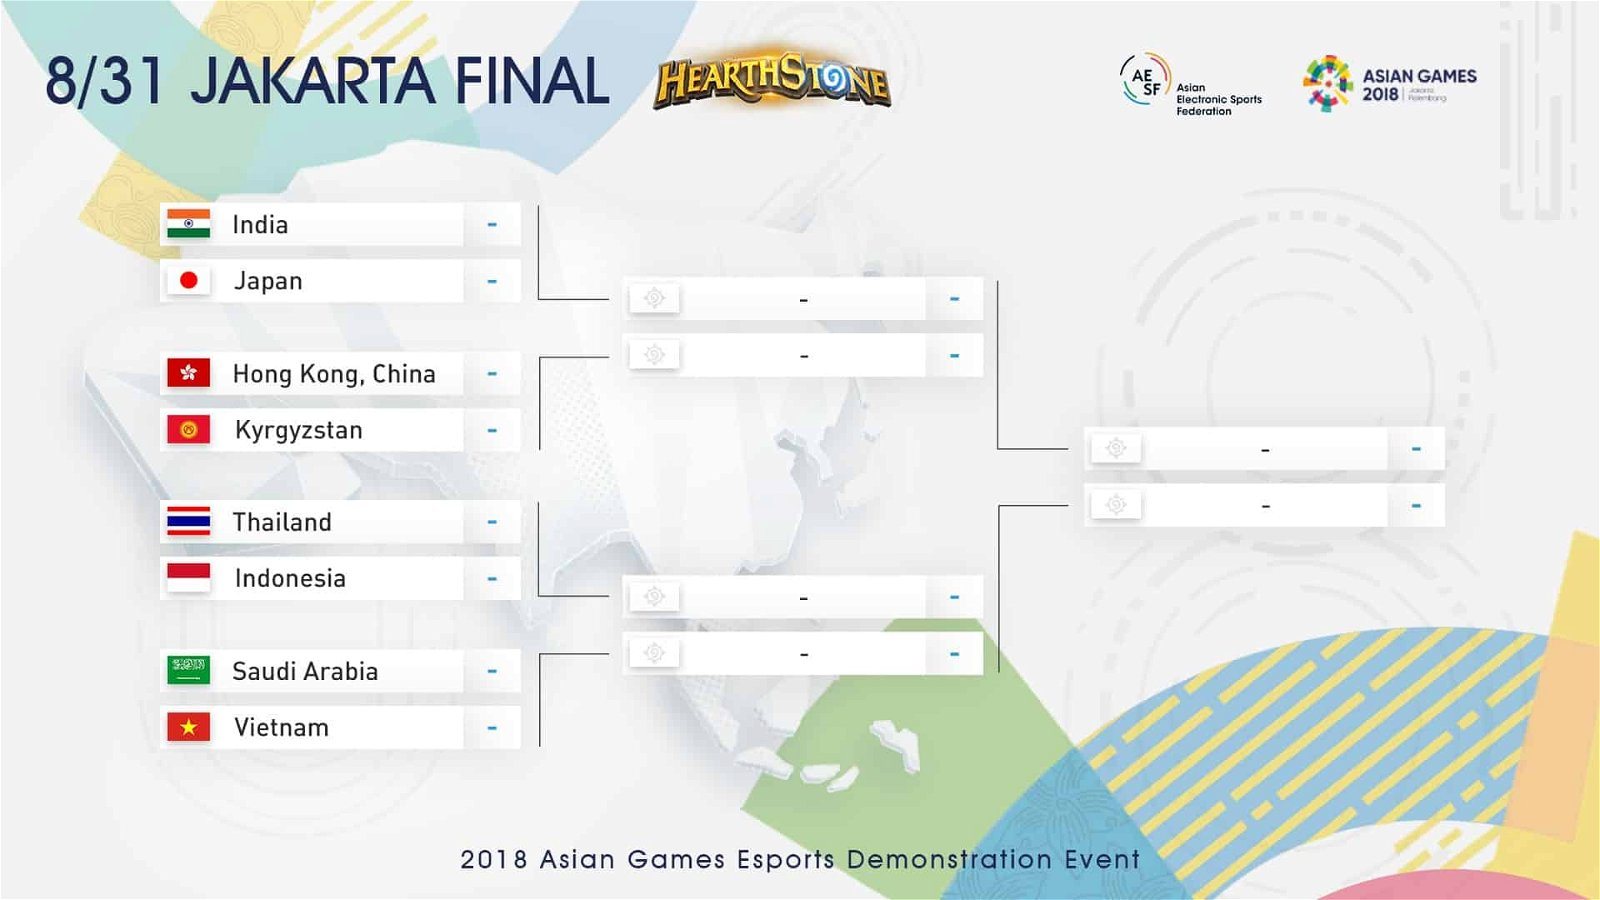 Hearthstone Esports Tournament Makes A Historical Debut At The Asian Games 1